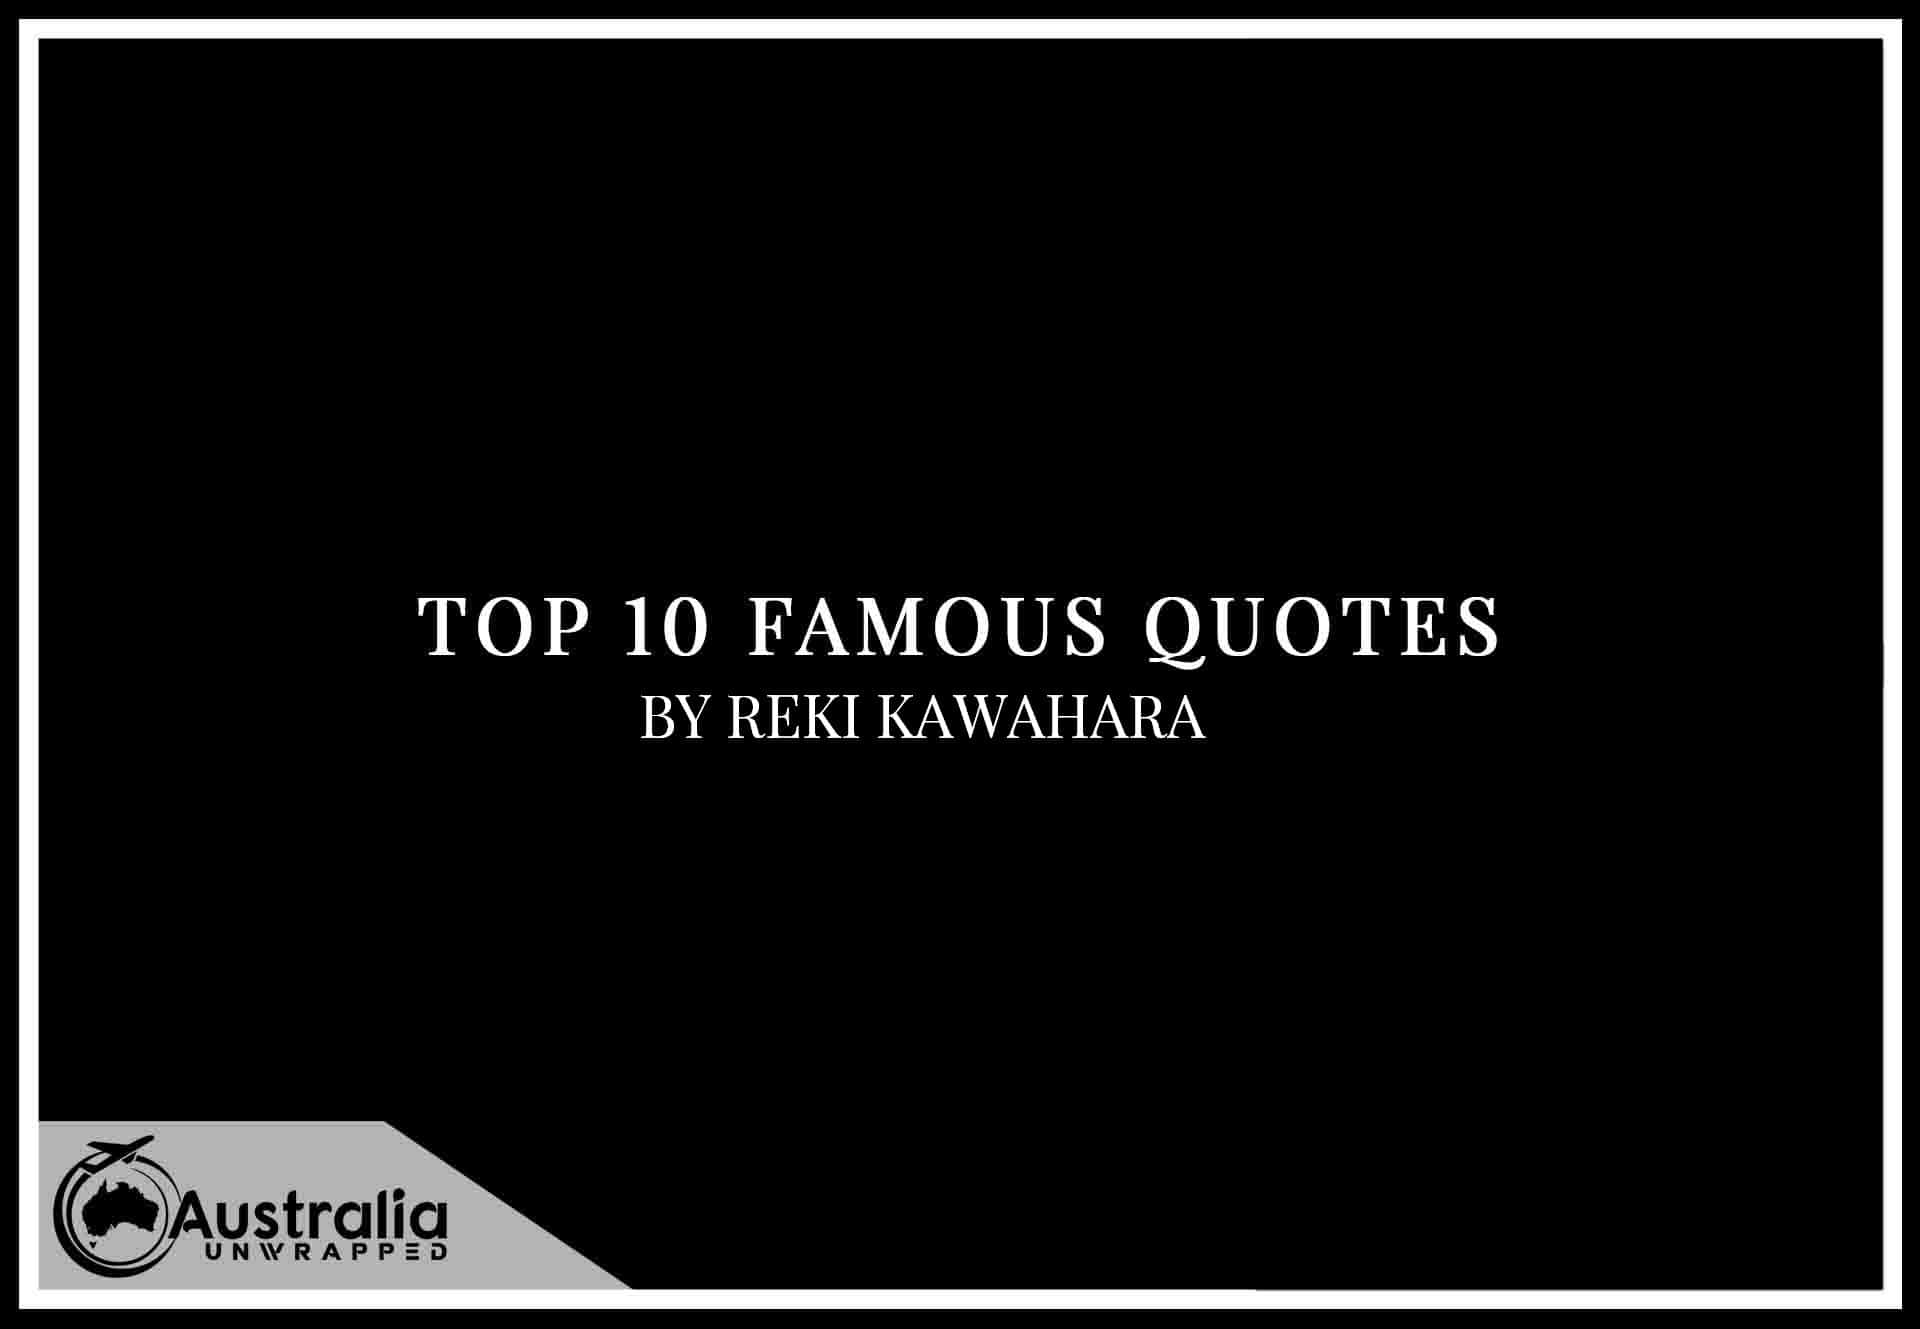 Top 10 Famous Quotes by Author Reki Kawahara